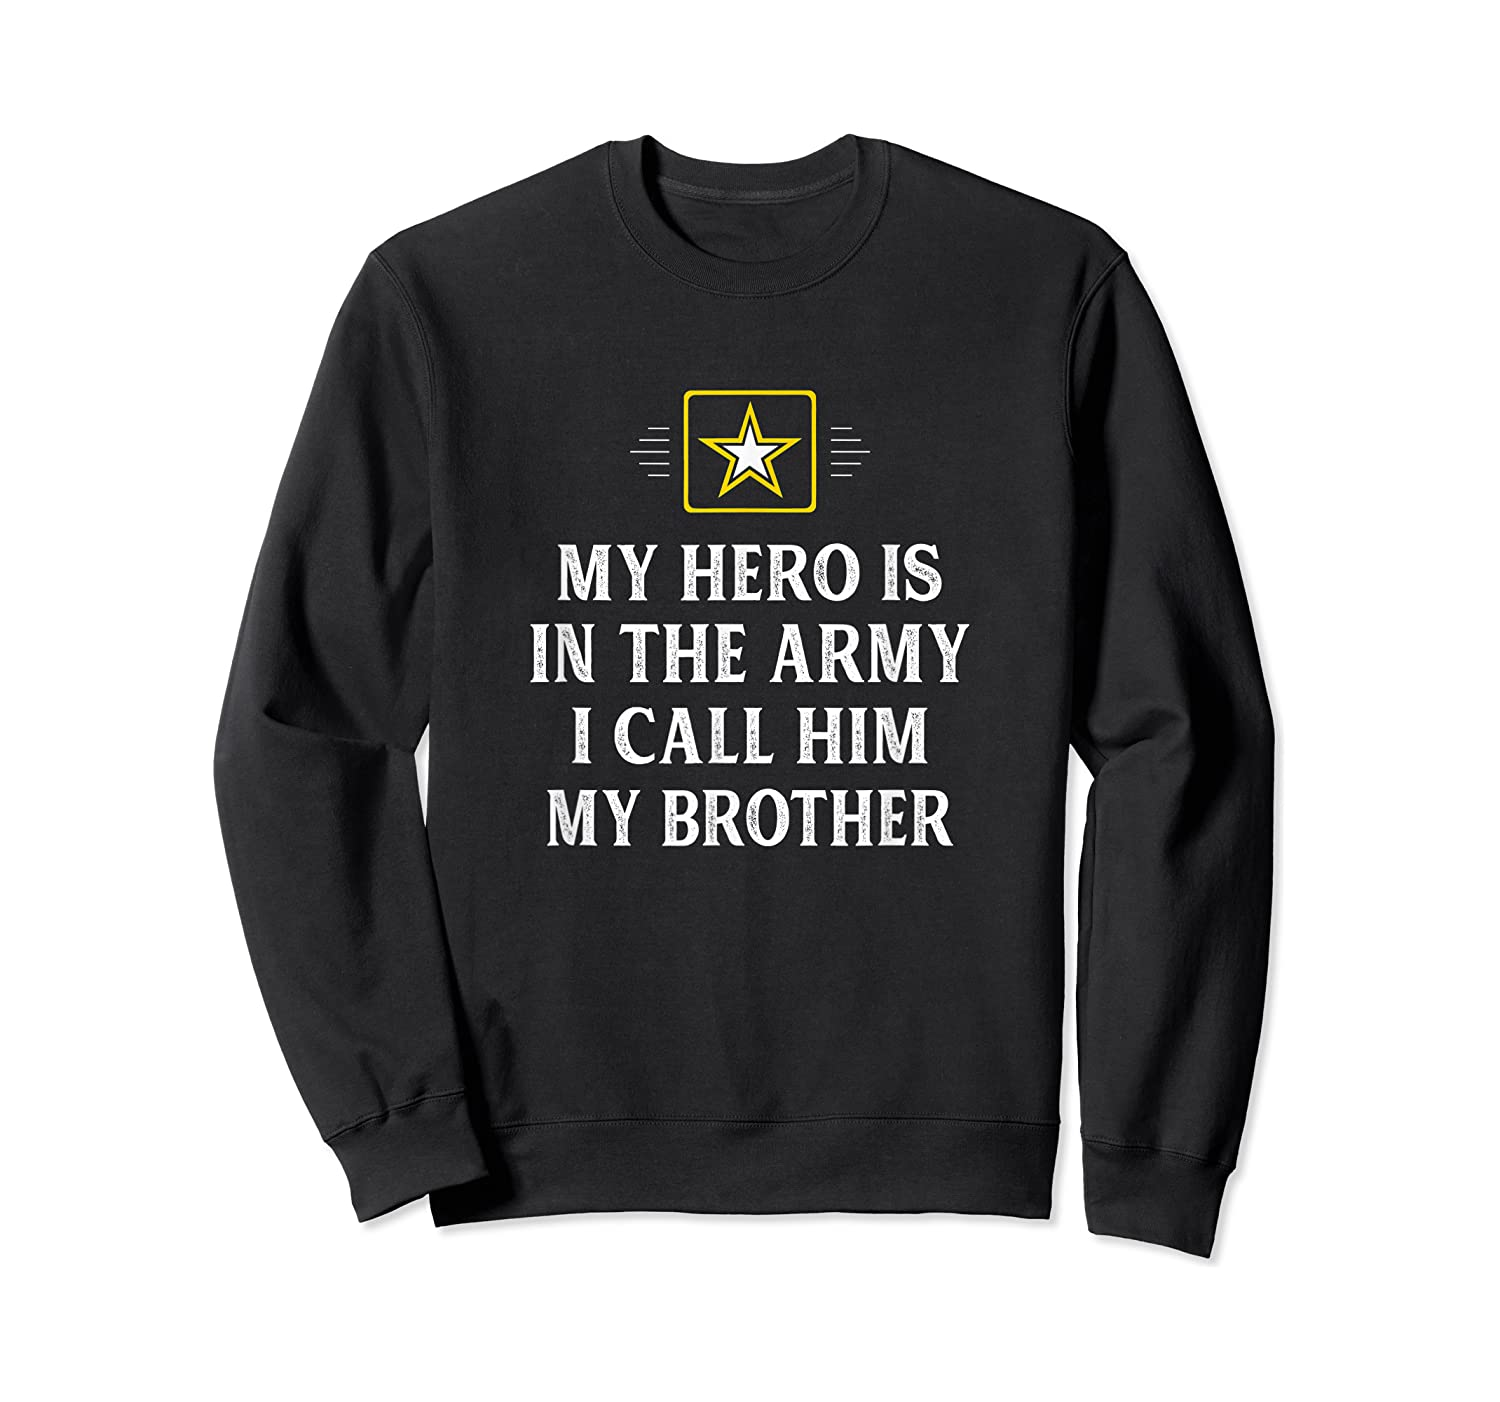 My Hero Is In The Army - I Call Him My Brother - Vintage - T-shirt Crewneck Sweater